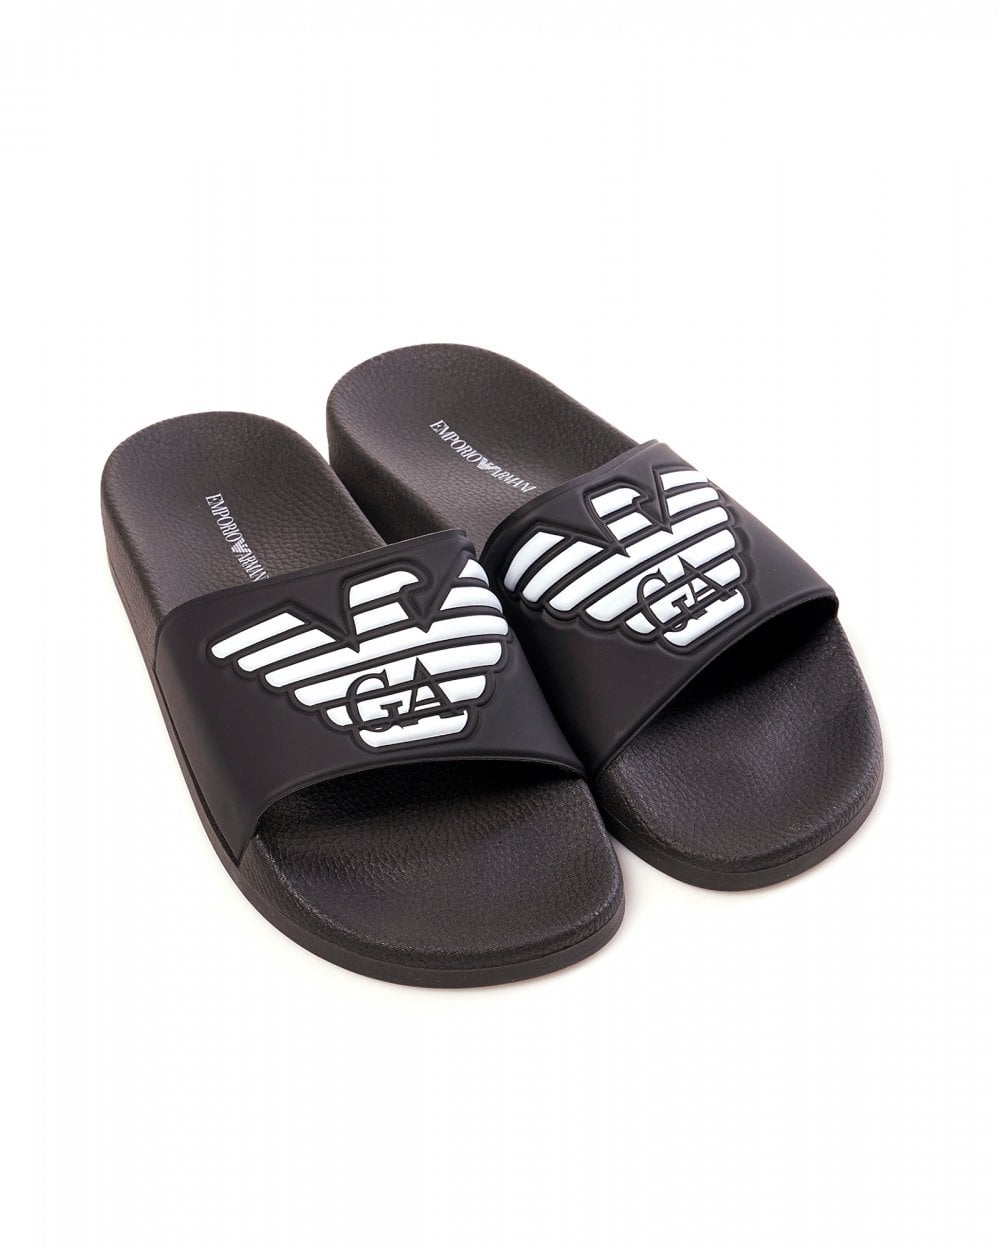 601e537f3 Emporio Armani Mens Eagle Logo Sliders